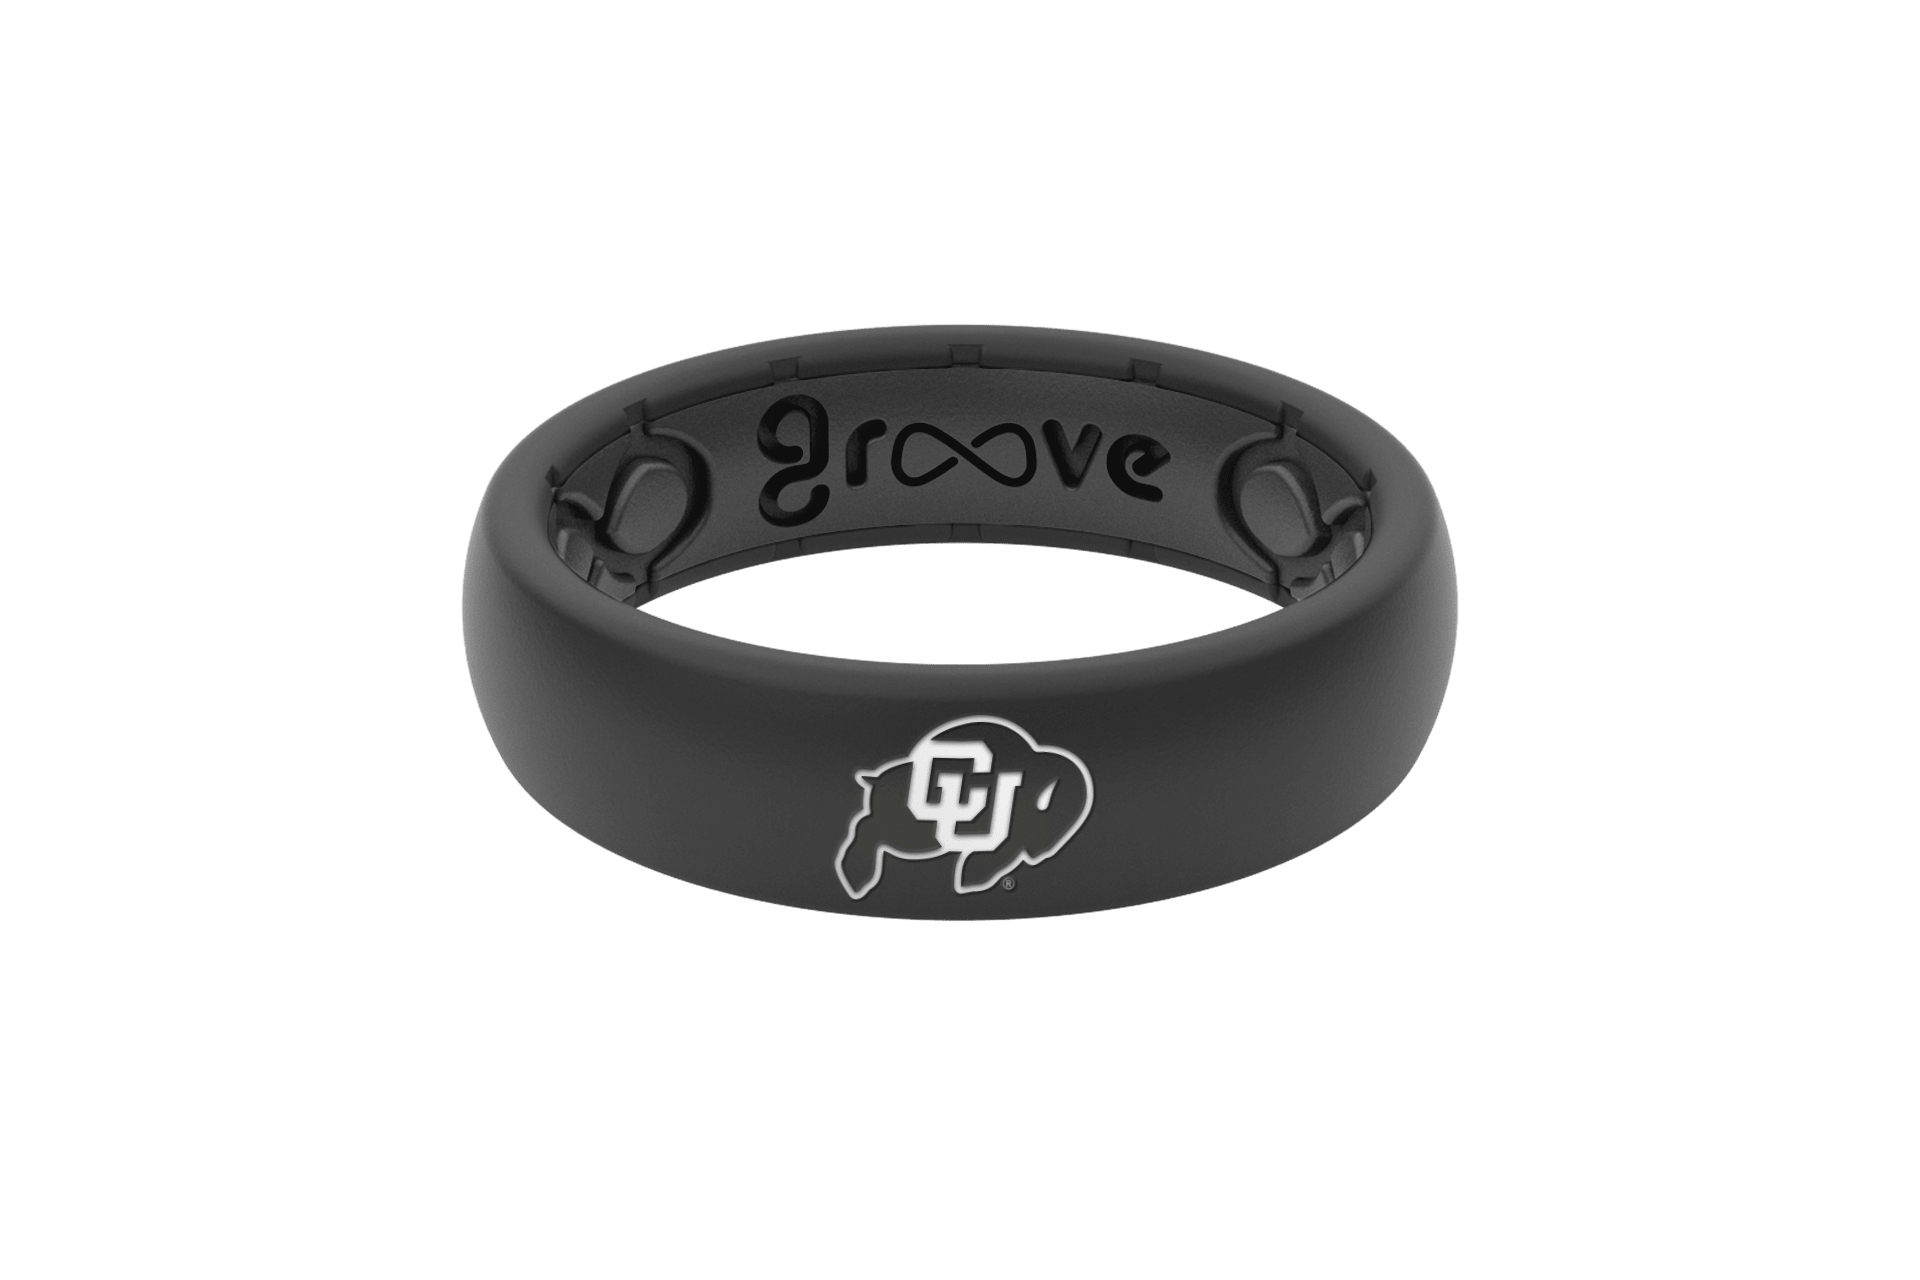 Thin College Colorado - Groove Life Silicone Wedding Rings